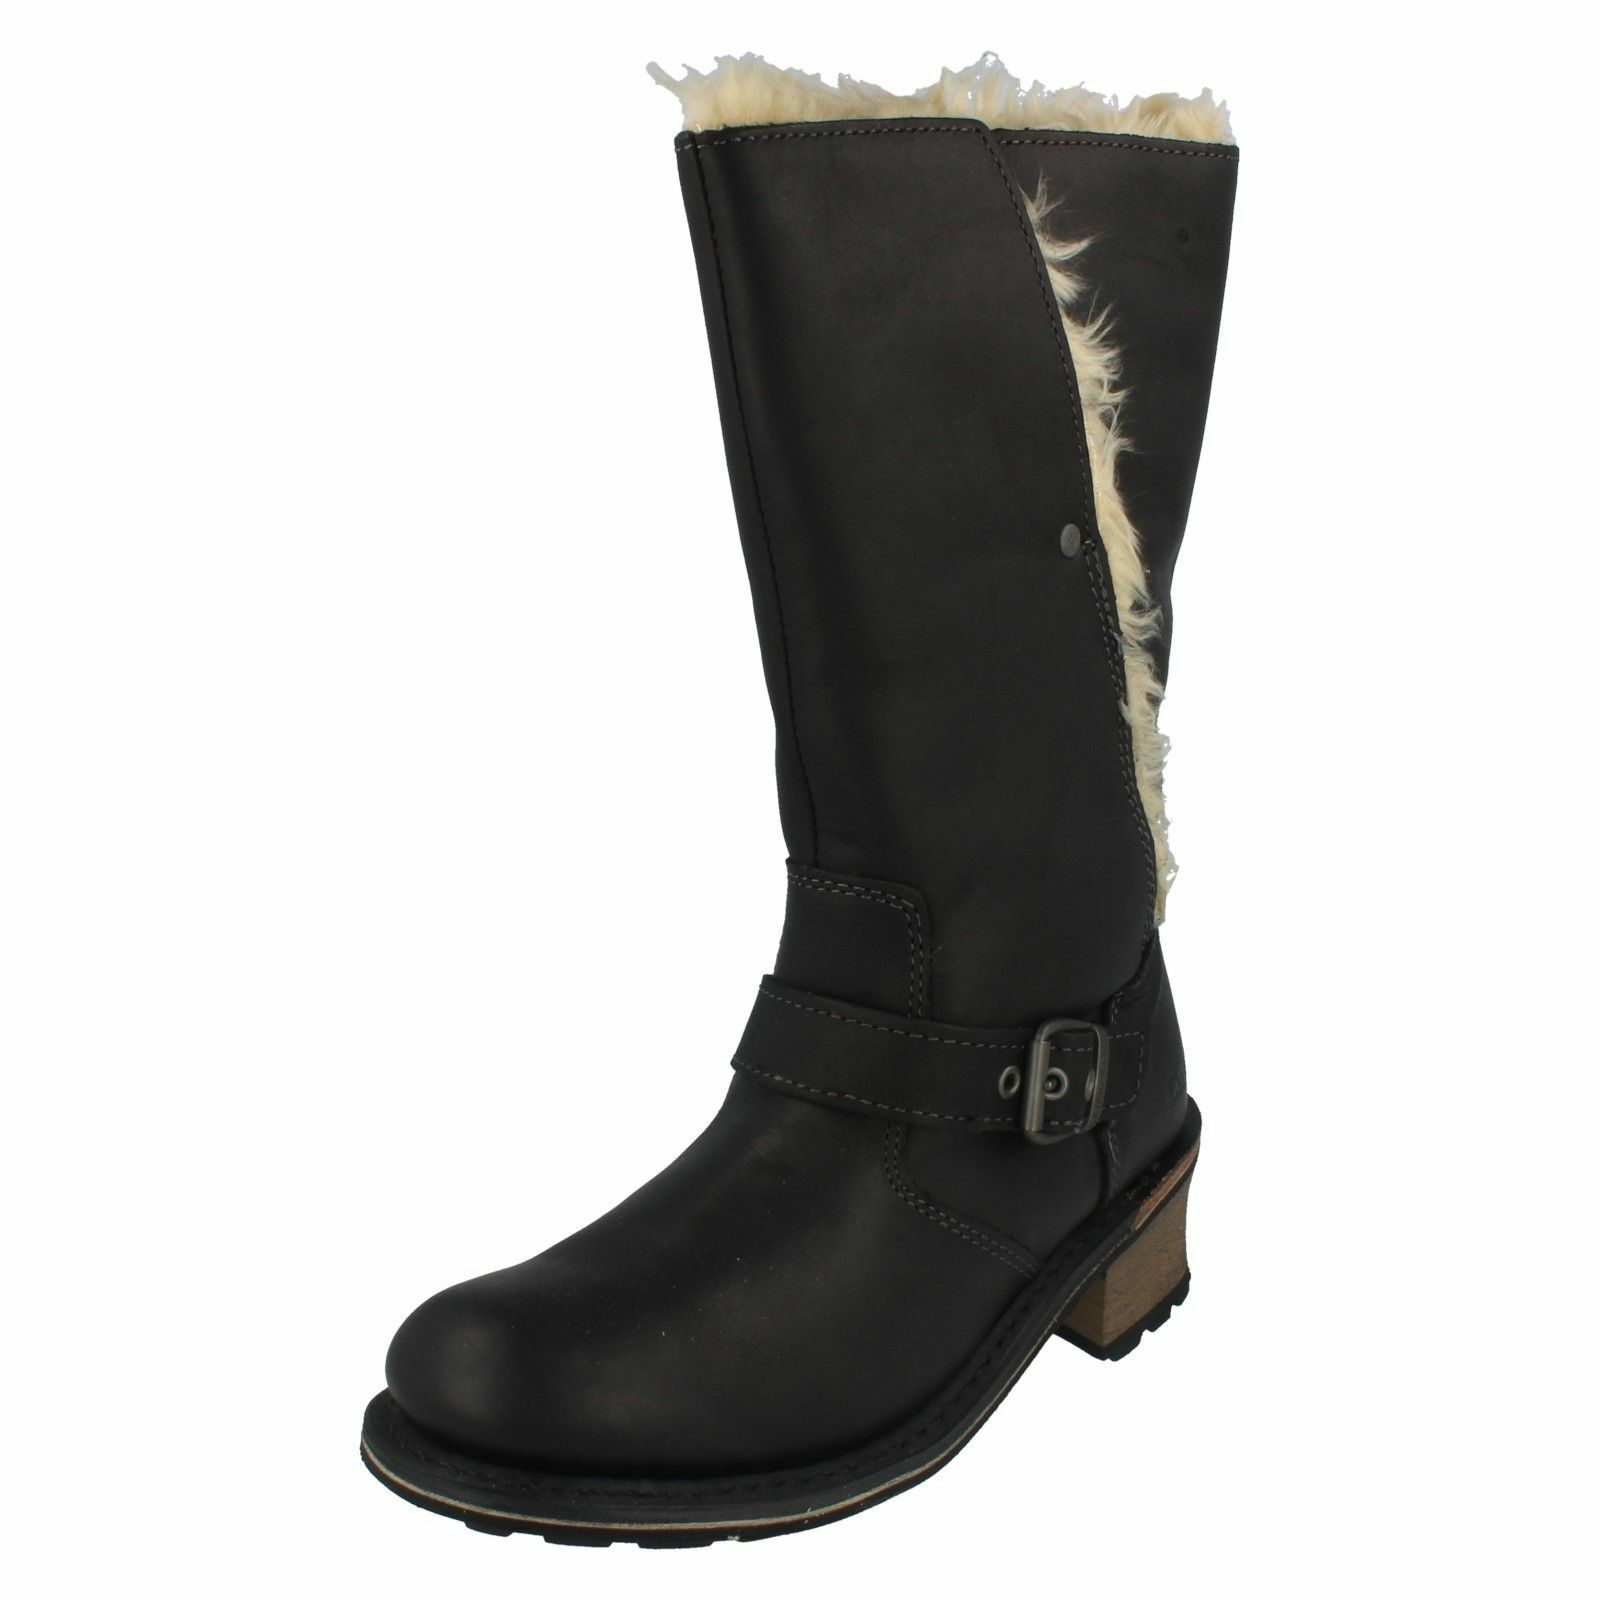 LADIES CATERPILLAR ANNA BLACK LEATHER FAUX FUR LINED CASUAL MID CALF BOOTS